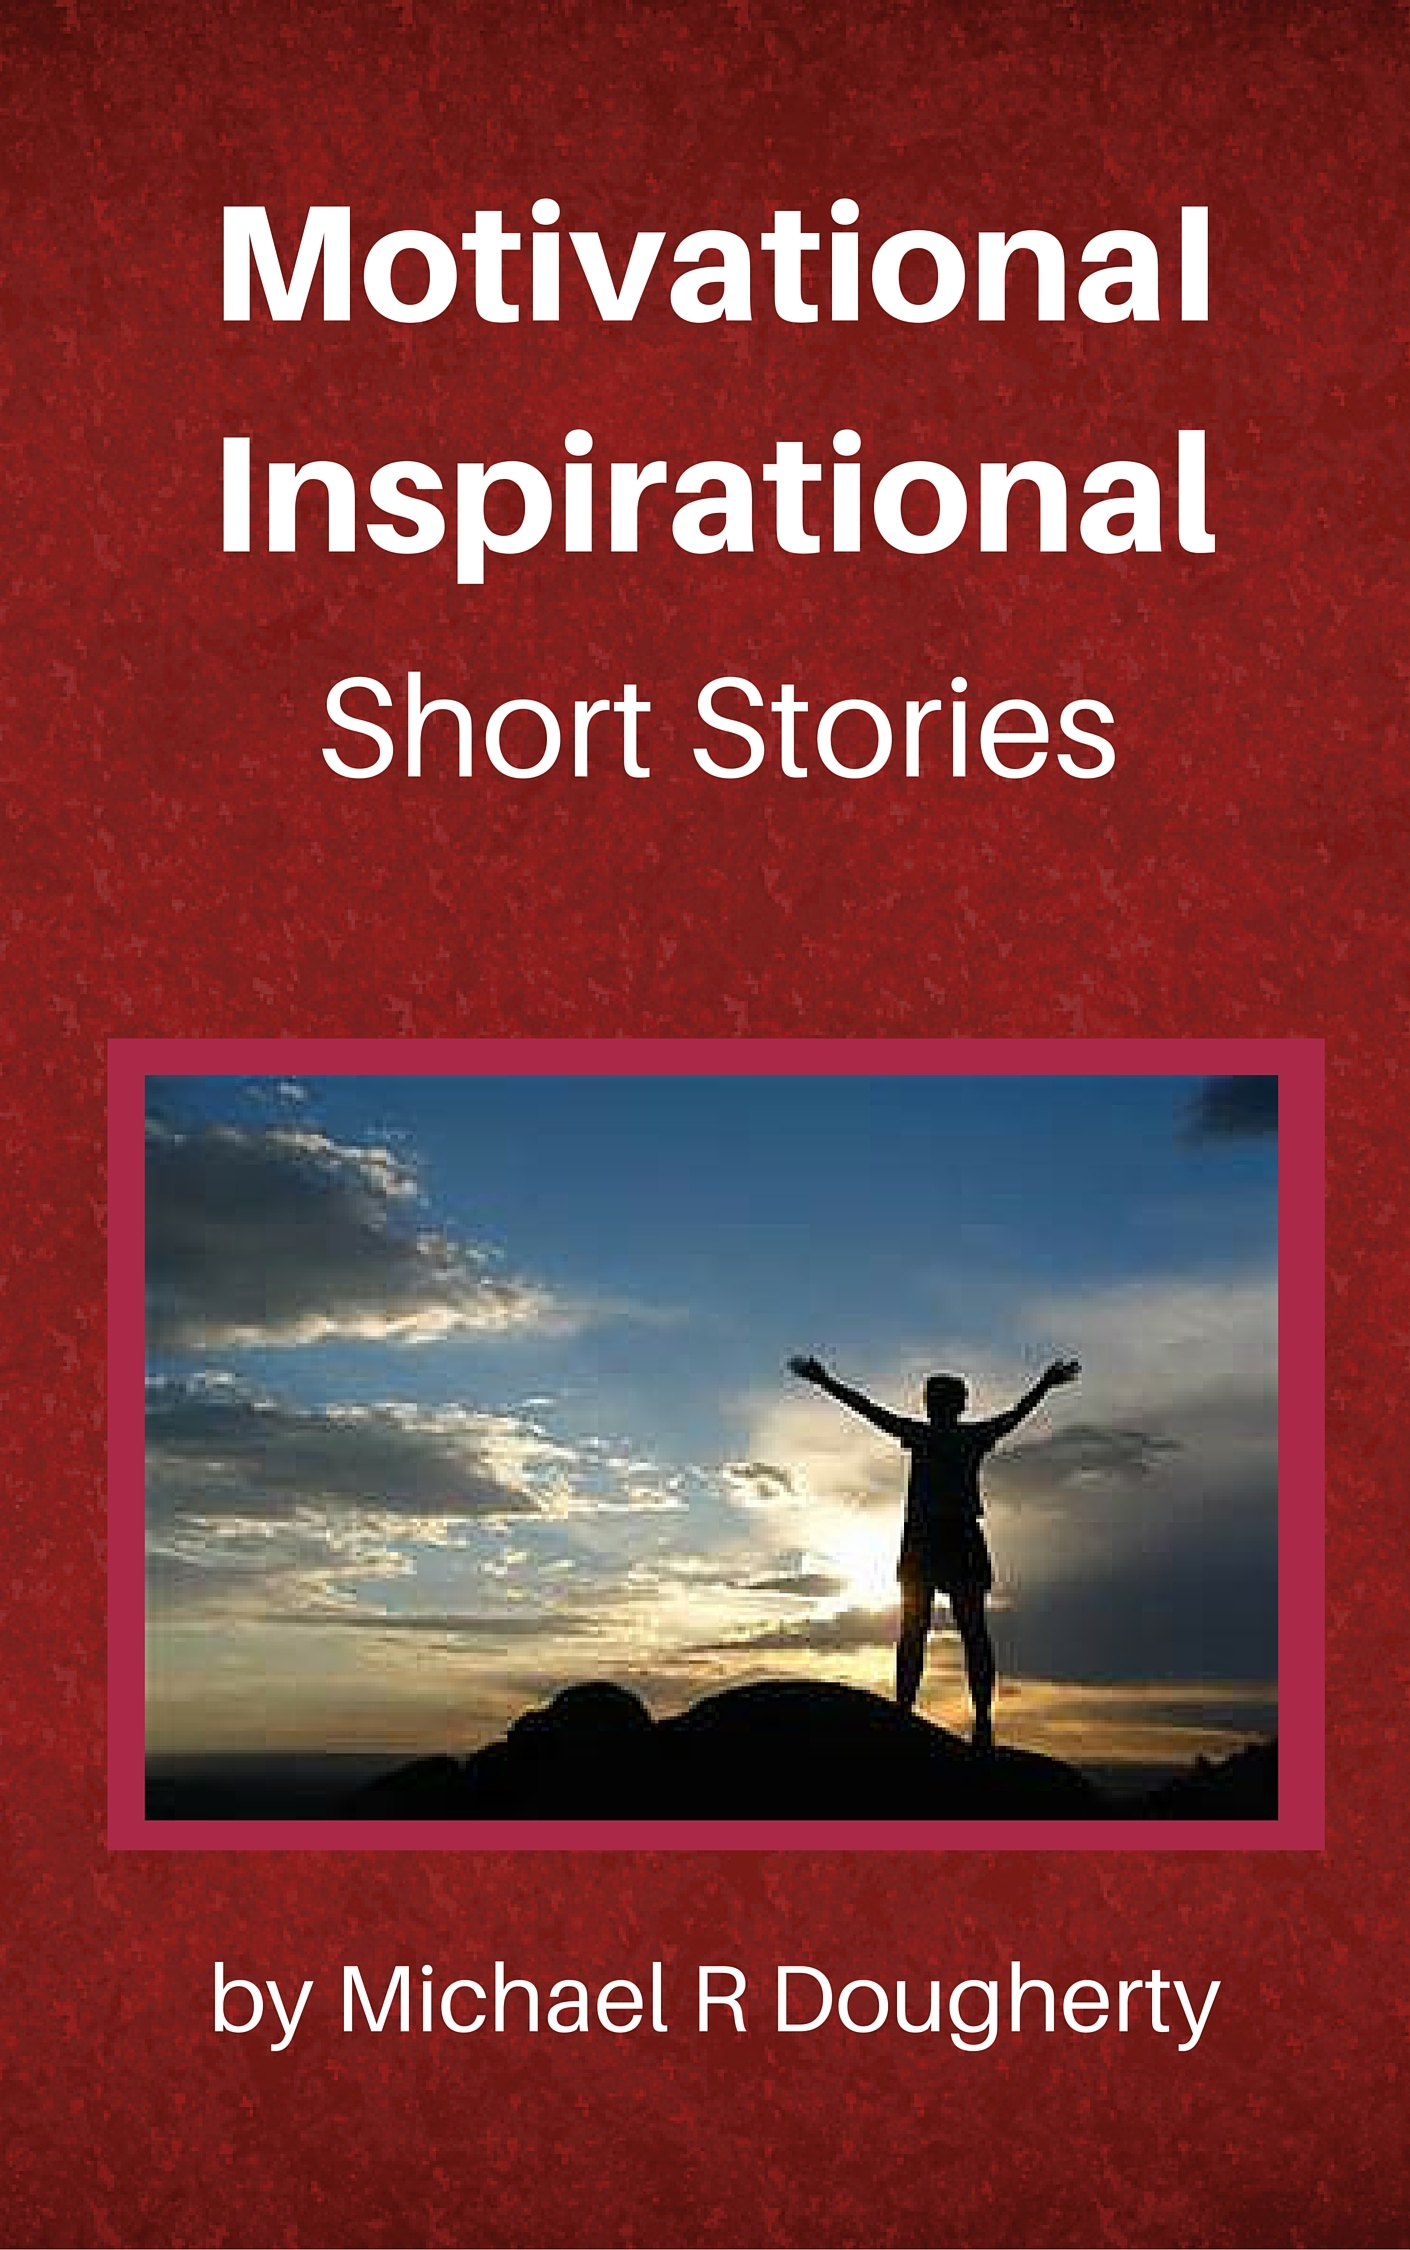 Motivational Inspirational Short Stories